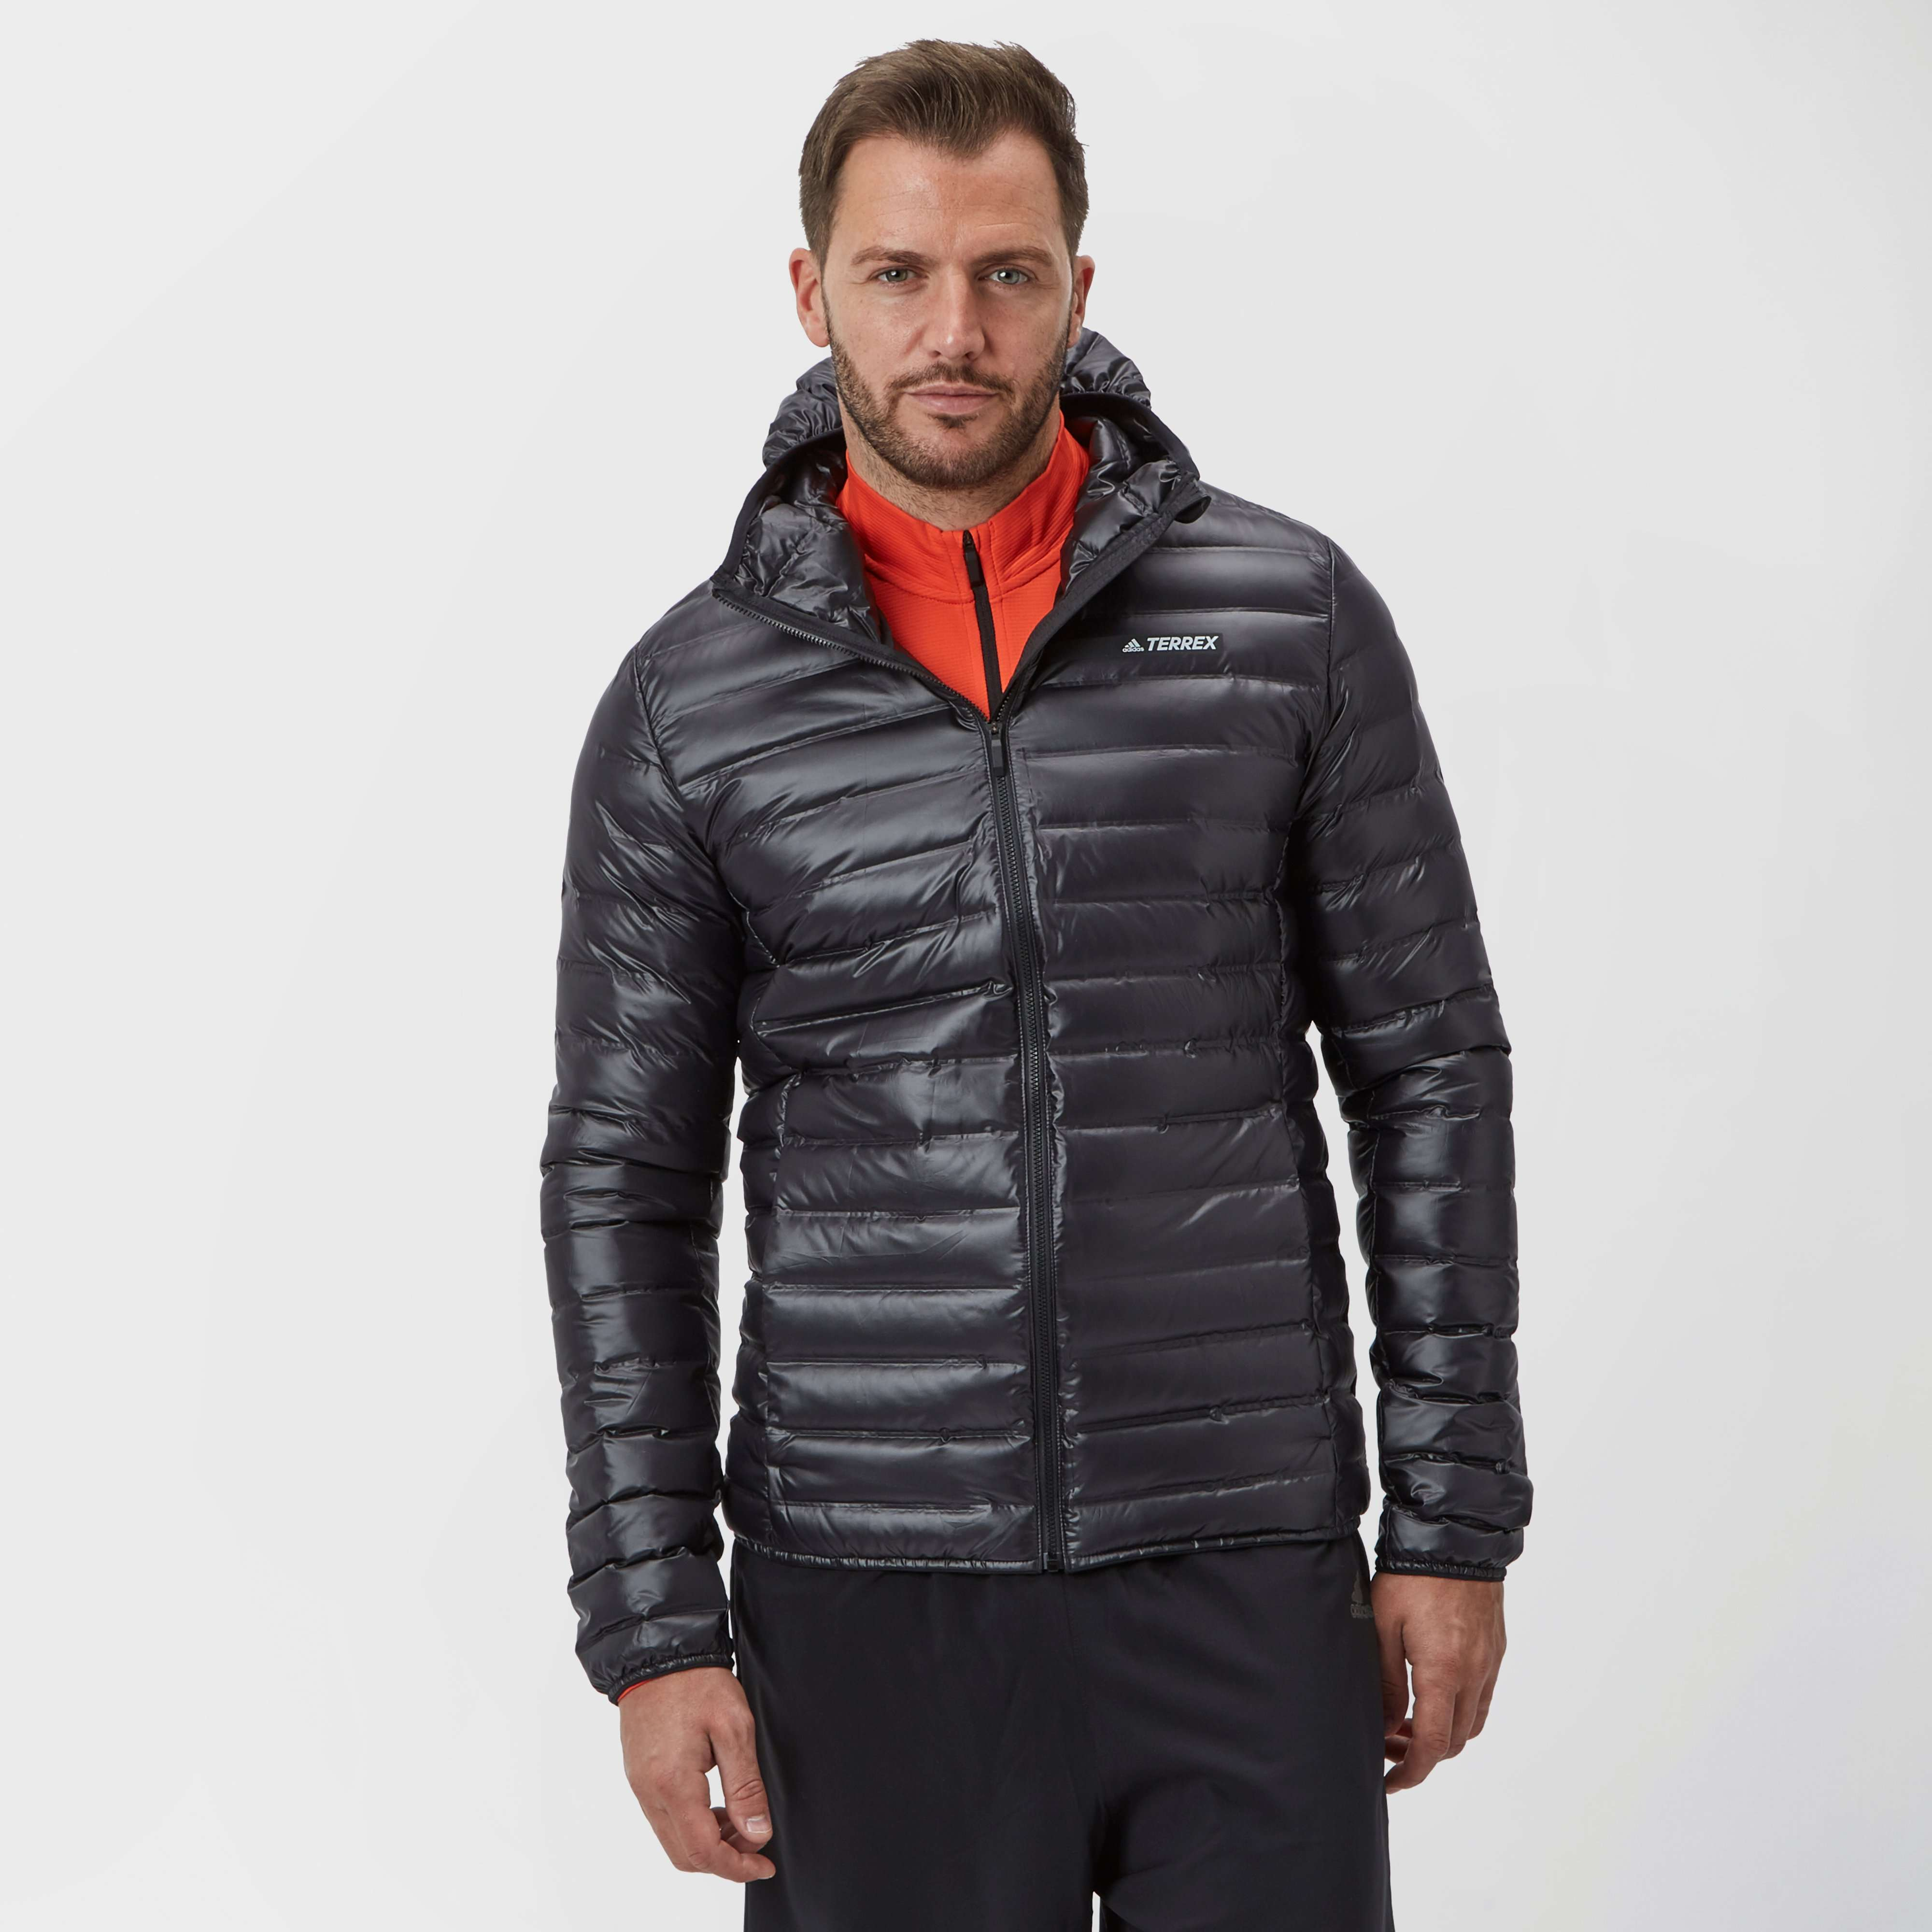 ADIDAS Men's Light Down Terrex Hooded Jacket